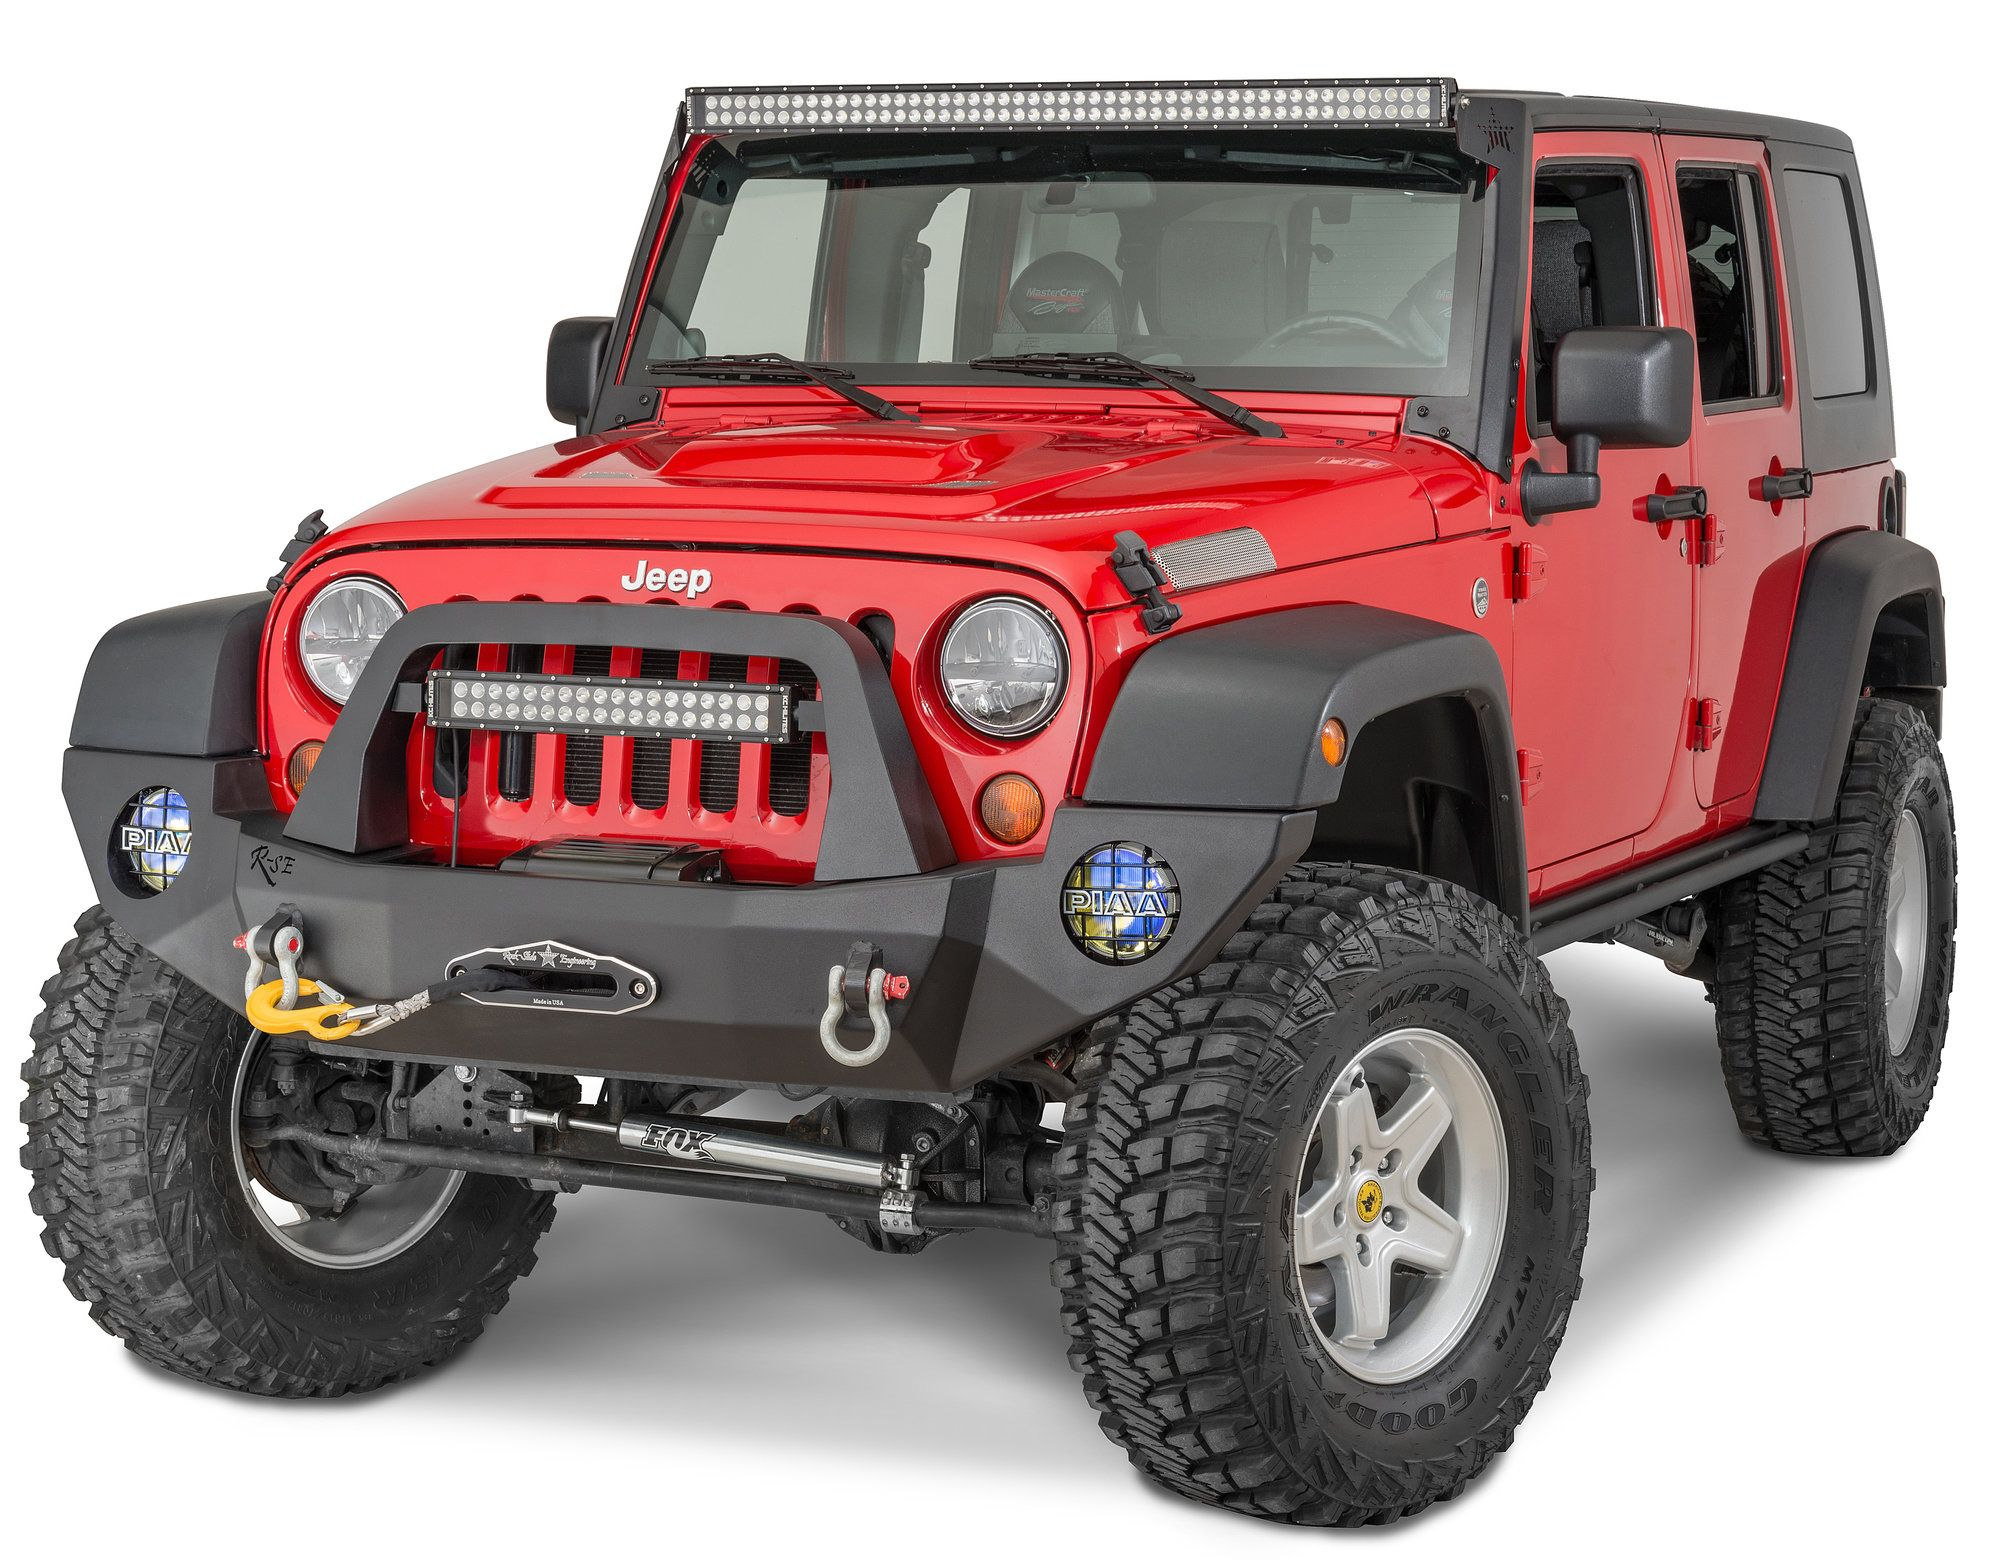 The Rse Rock Slide Engineering Front Bumper Is Built With 3 16 Jeep Wrangler Construction Alloy Steel Or Aluminum And 1 4 Mounting Plates